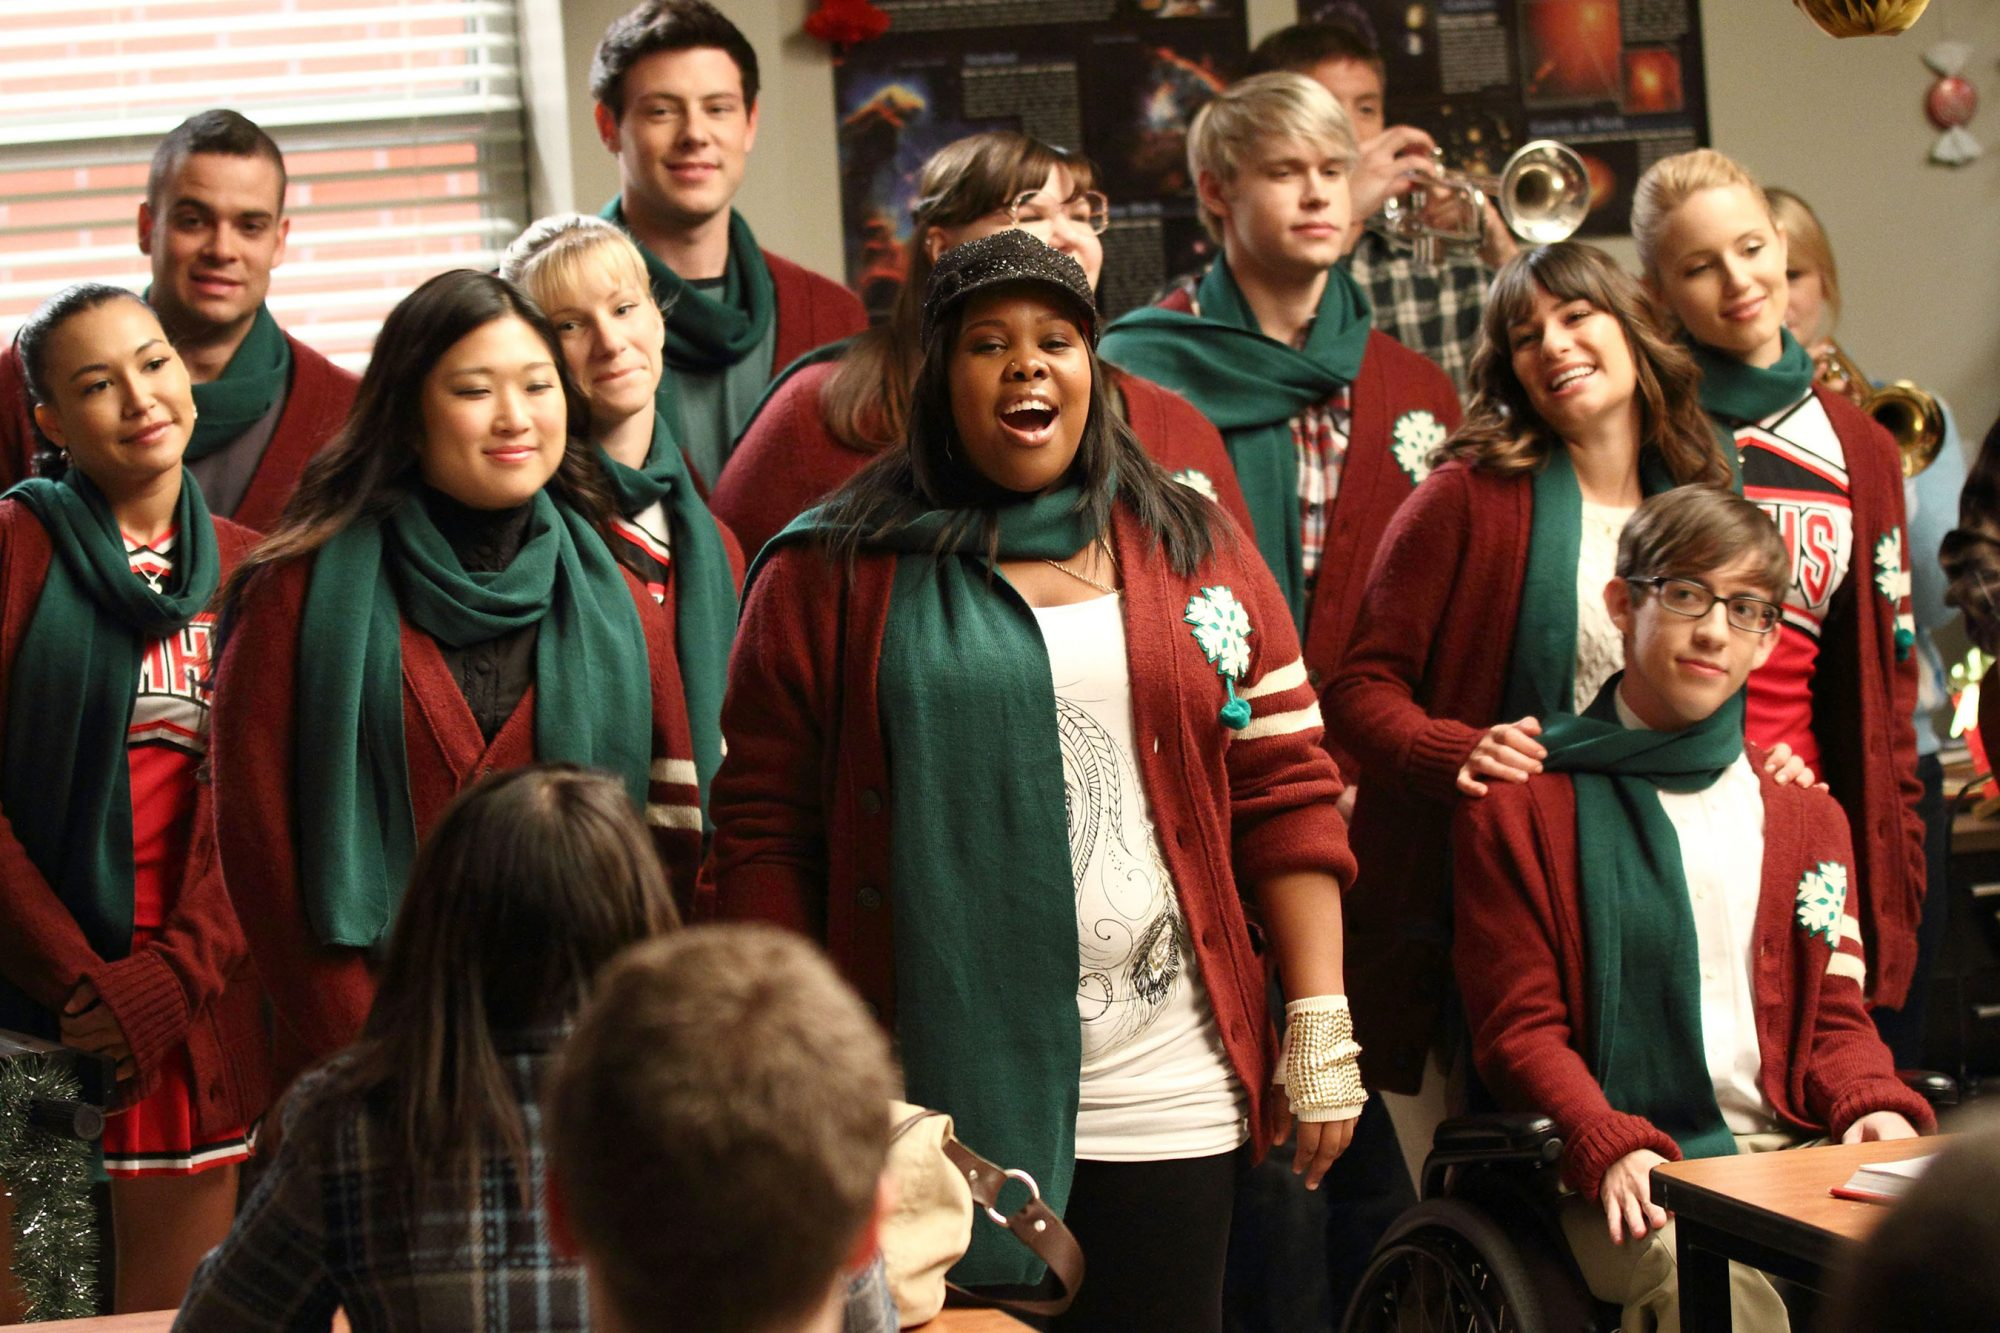 Glee,  A Very Glee Christmas  (season 2, episode 10)